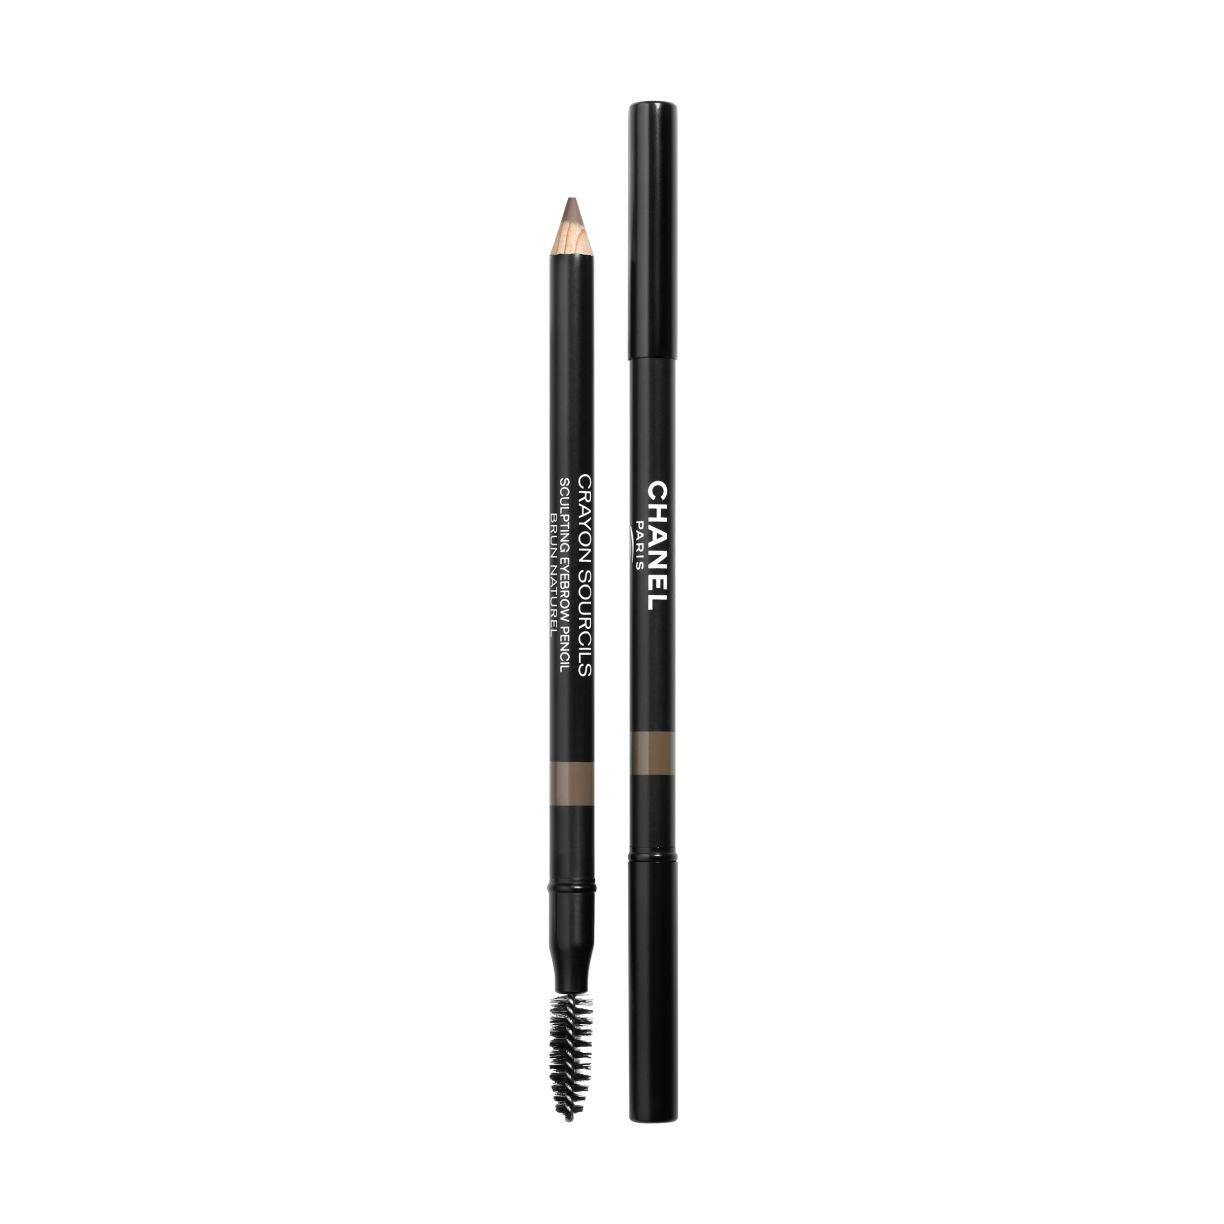 CRAYON SOURCILS SCULPTING EYEBROW PENCIL 30 BRUN NATUREL 1G